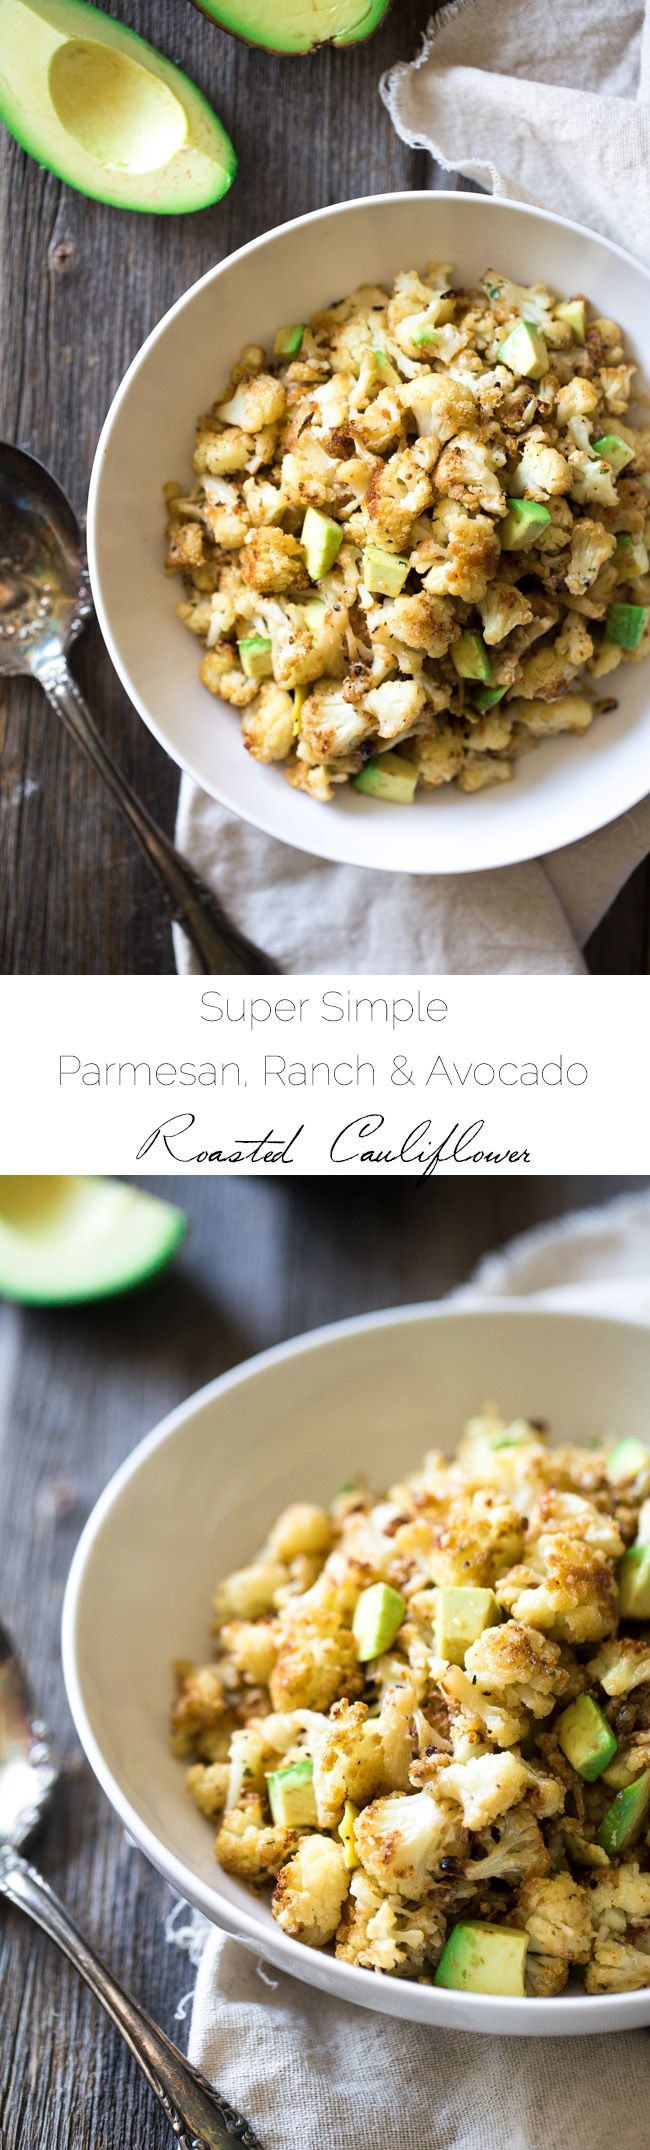 Ranch Roasted Cauliflower with Parmesan and Avocado - A great way to get kids to eat veggies! Healthy, easy, 5 ingredients and ready in 30 mins!   Foodfaithfitness.com   @FoodFaithFit